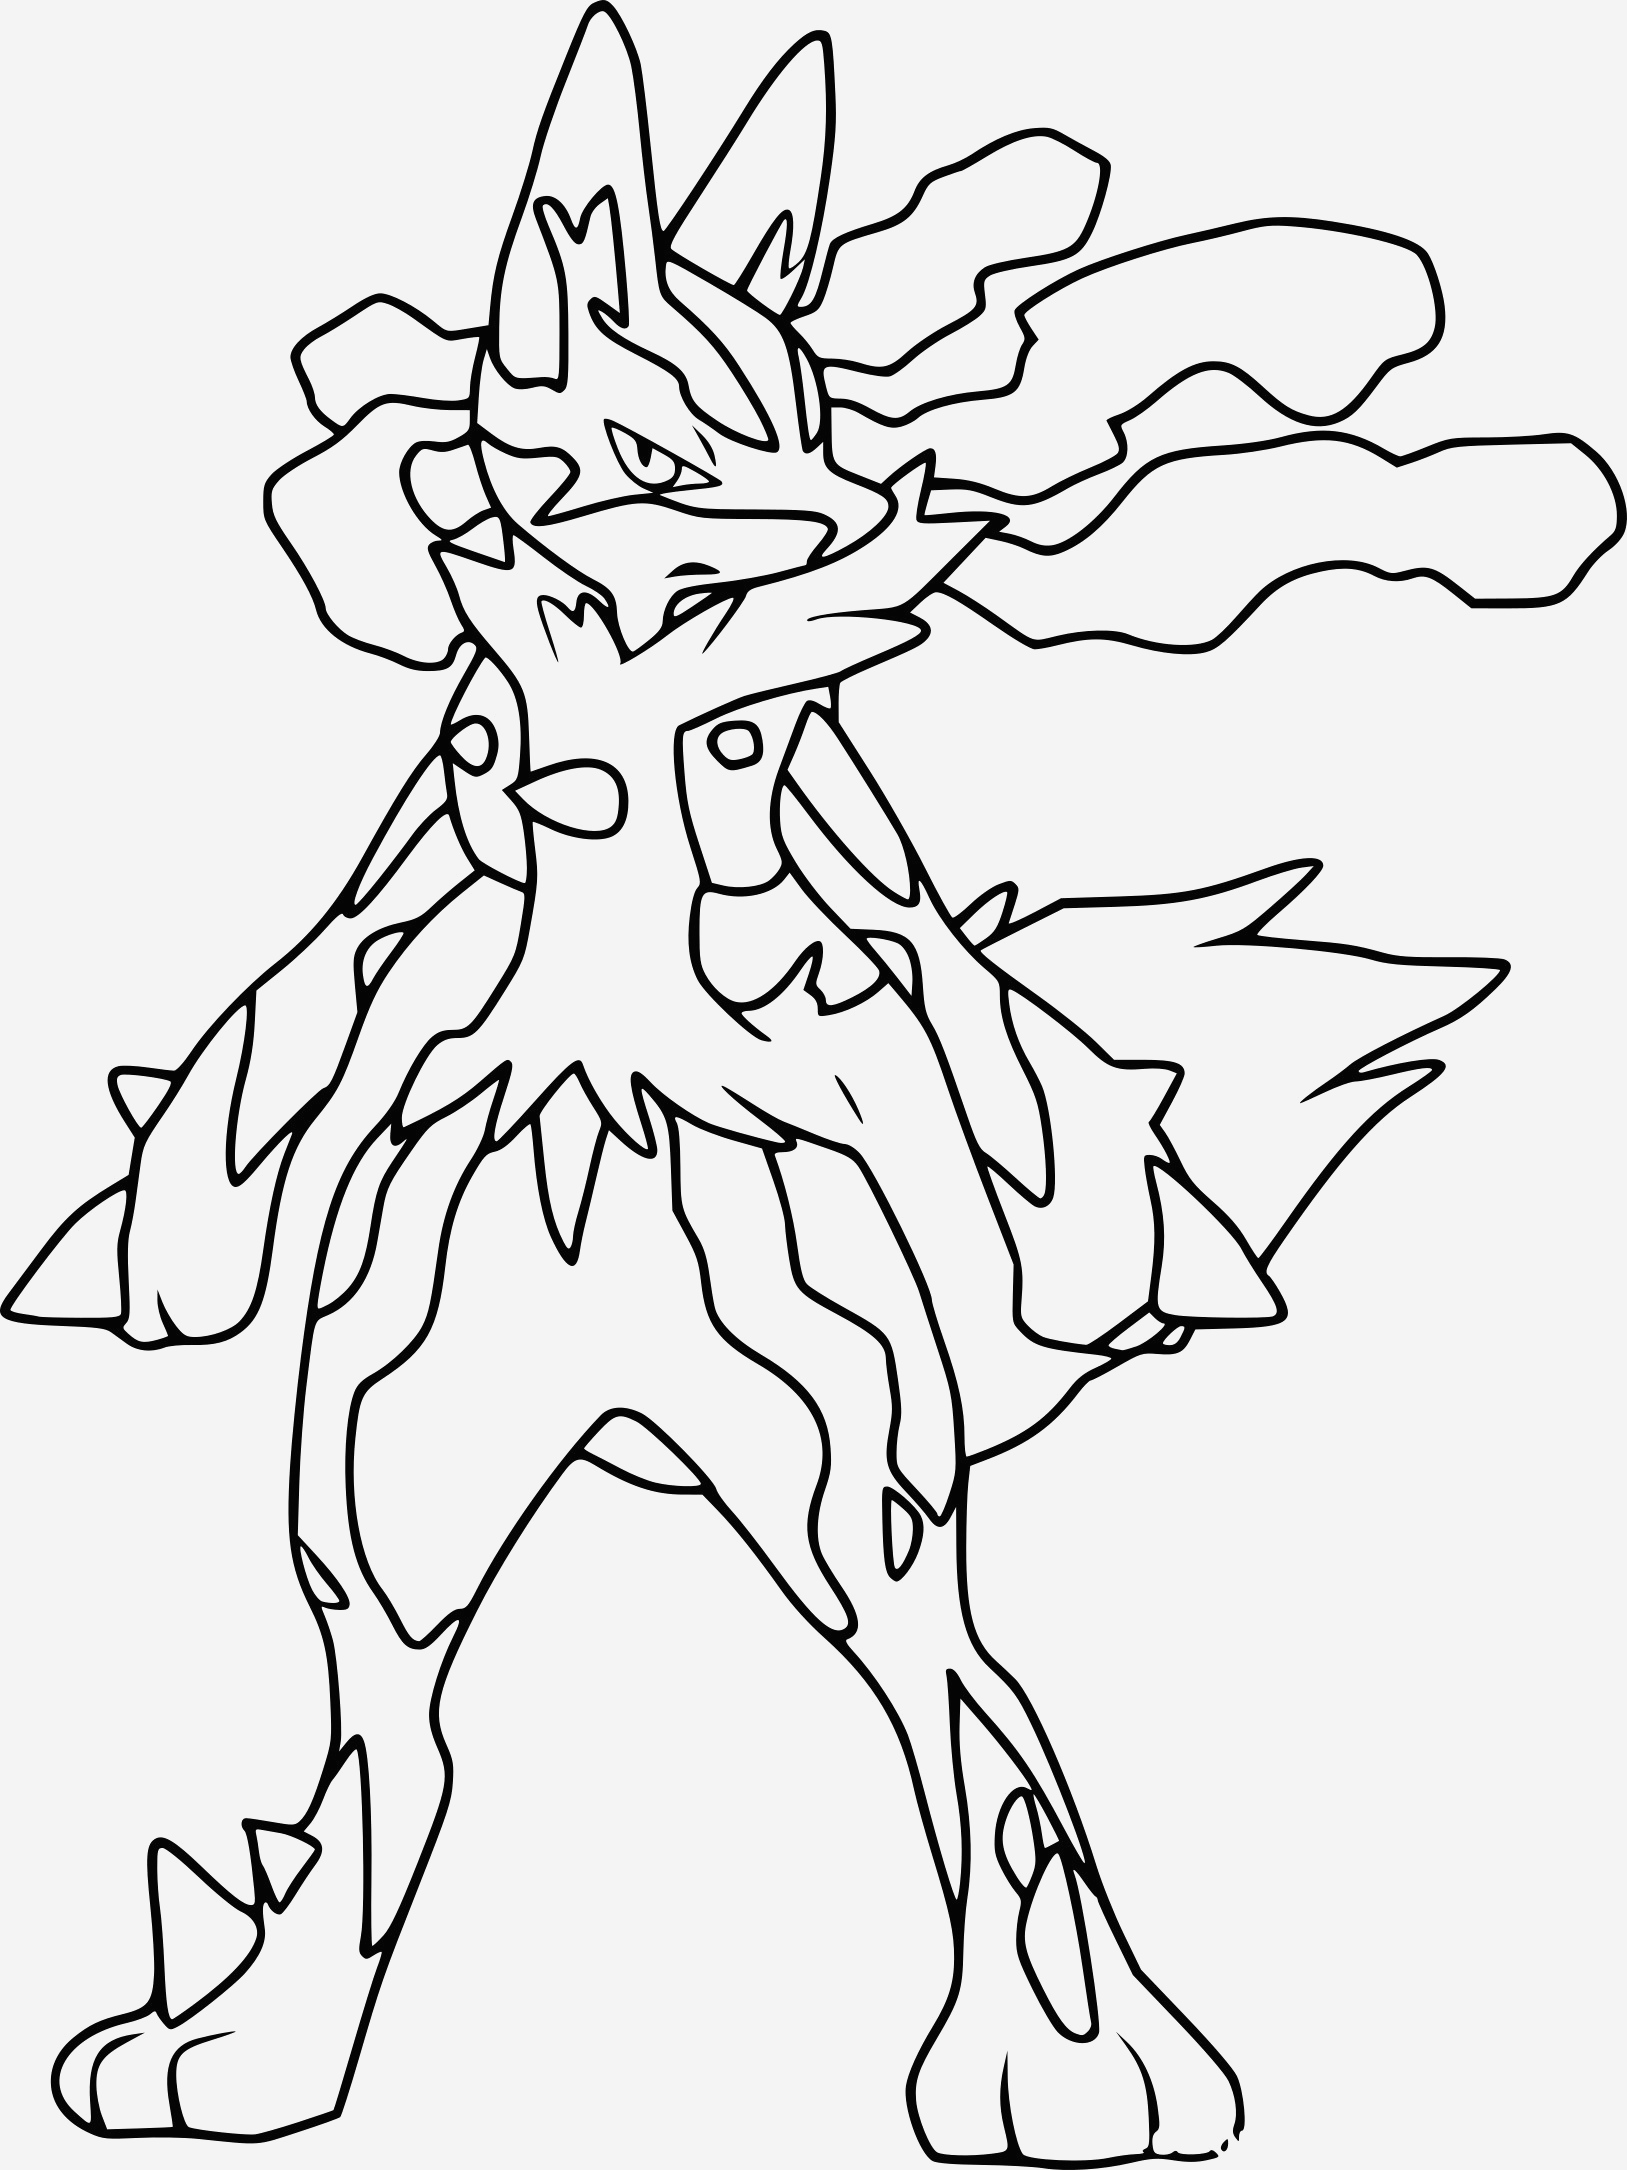 Coloriage Pokemon Evoli Lovely 159 Dessins De Coloriage Pokemon   Imprimer Of Coloriage Pokemon Evoli